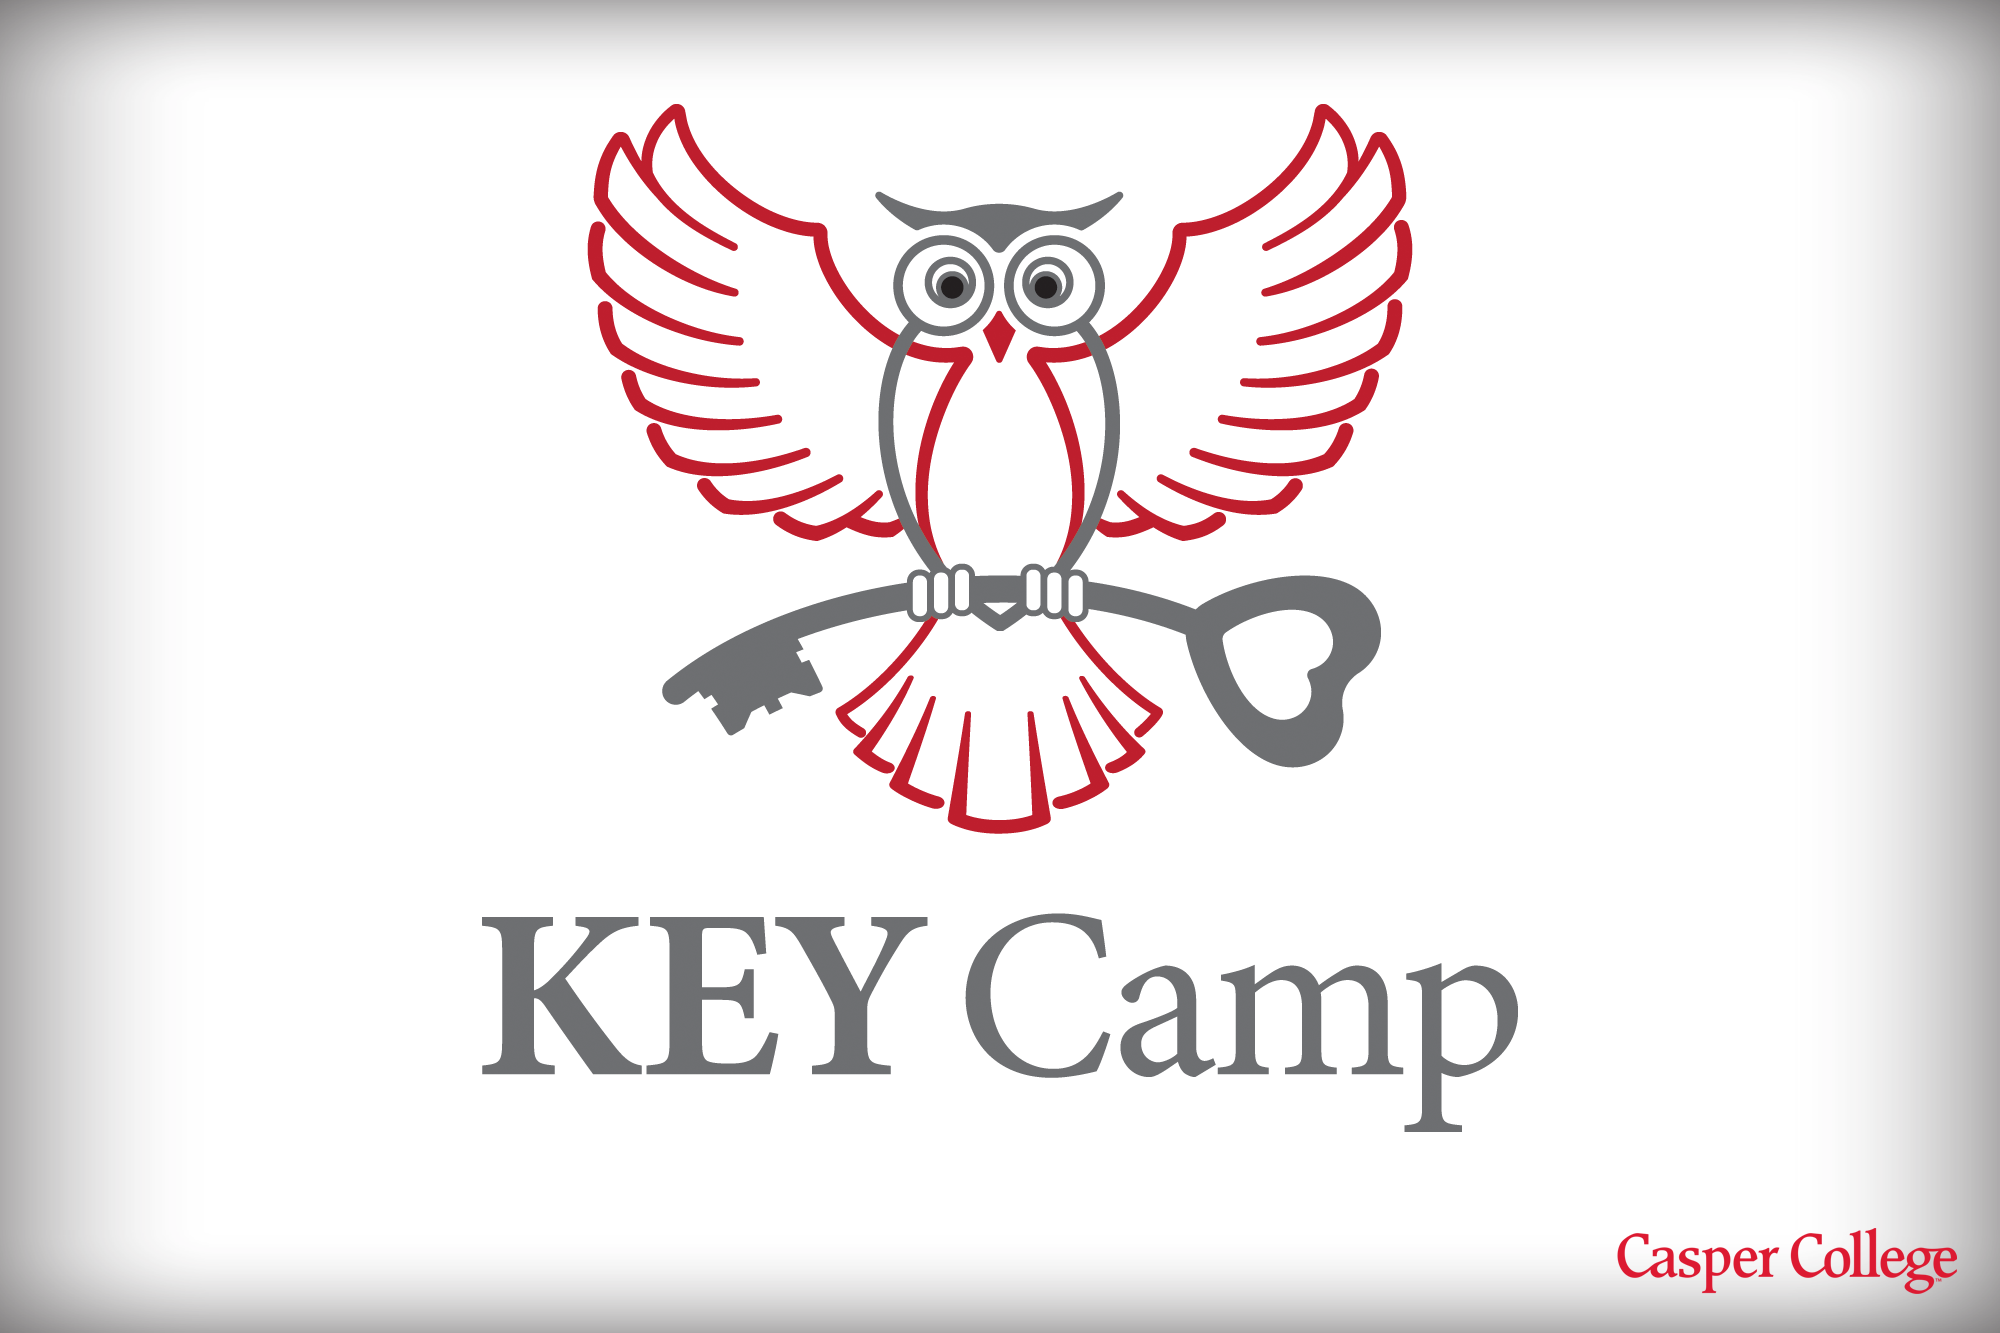 Line drawing of an owl perched on an old-fashioned key.